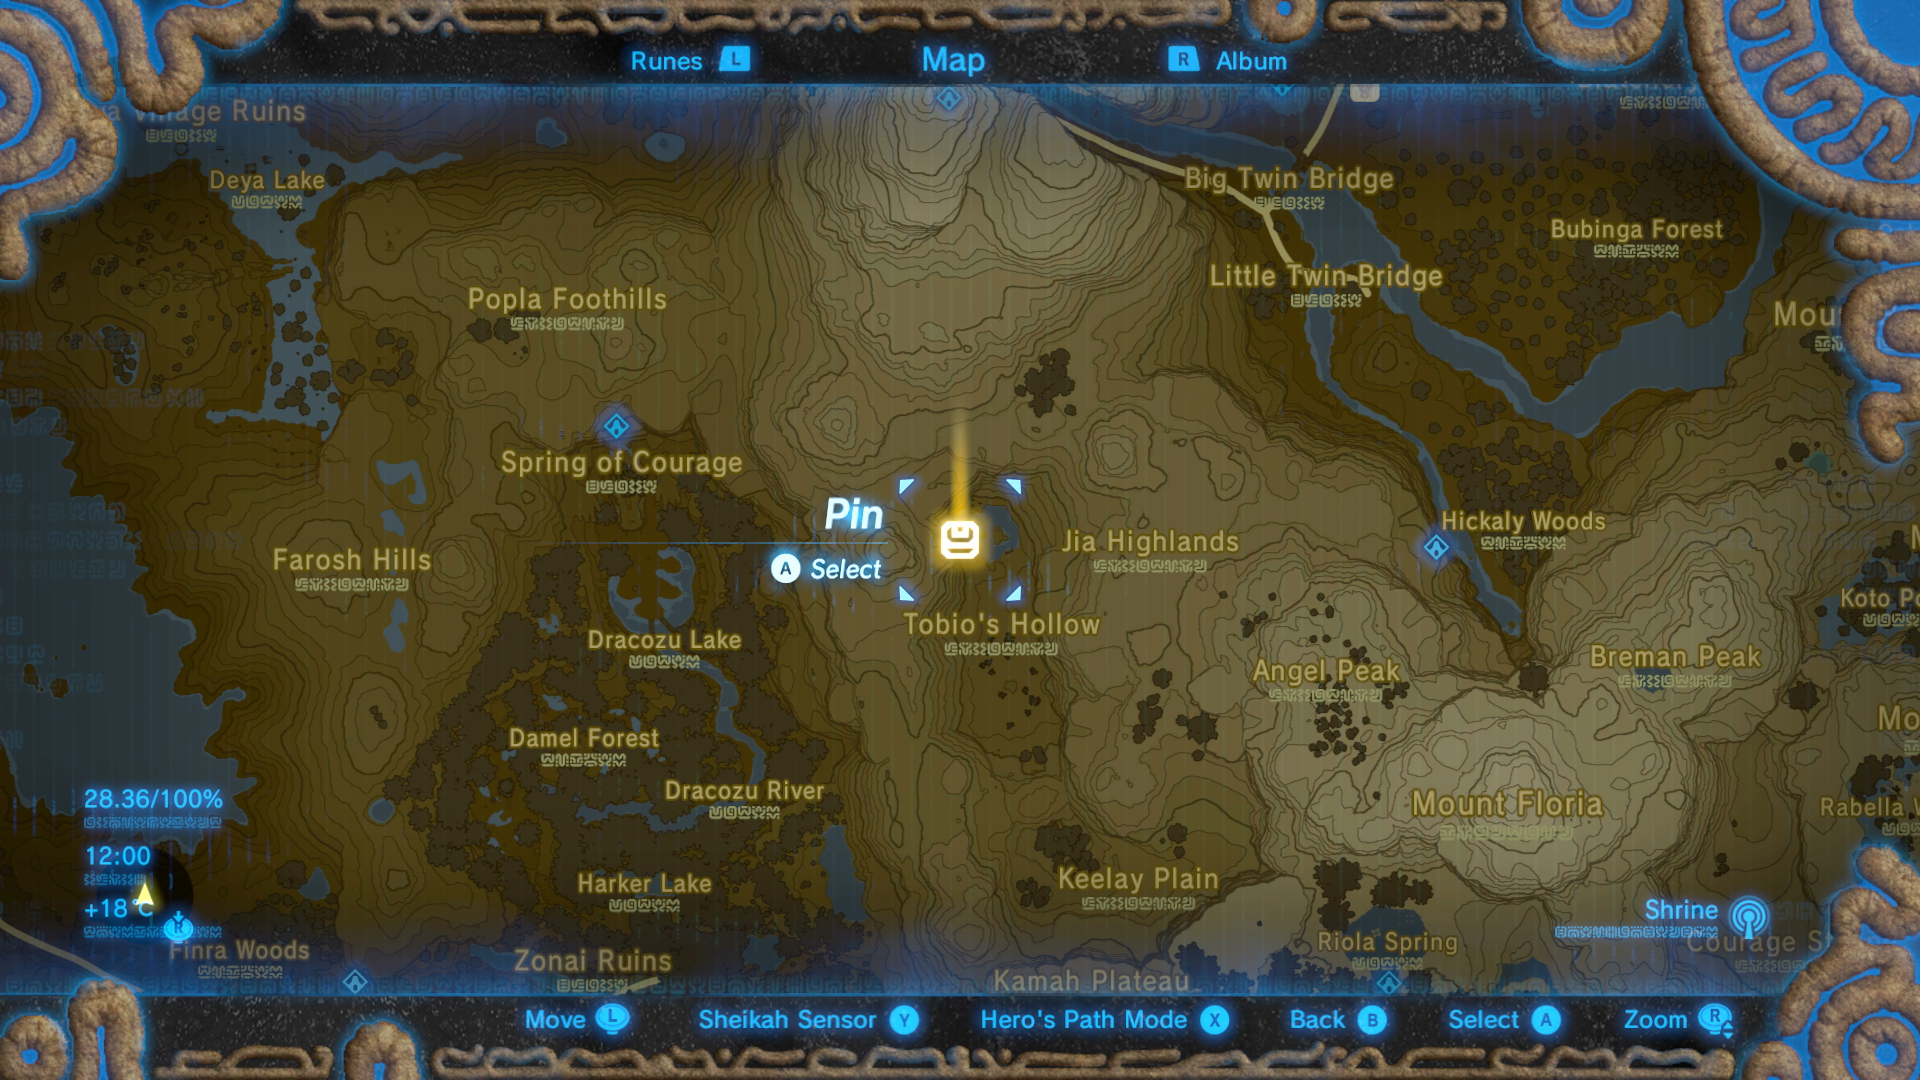 How to find all the new items, clothing, and unlockables in Breath